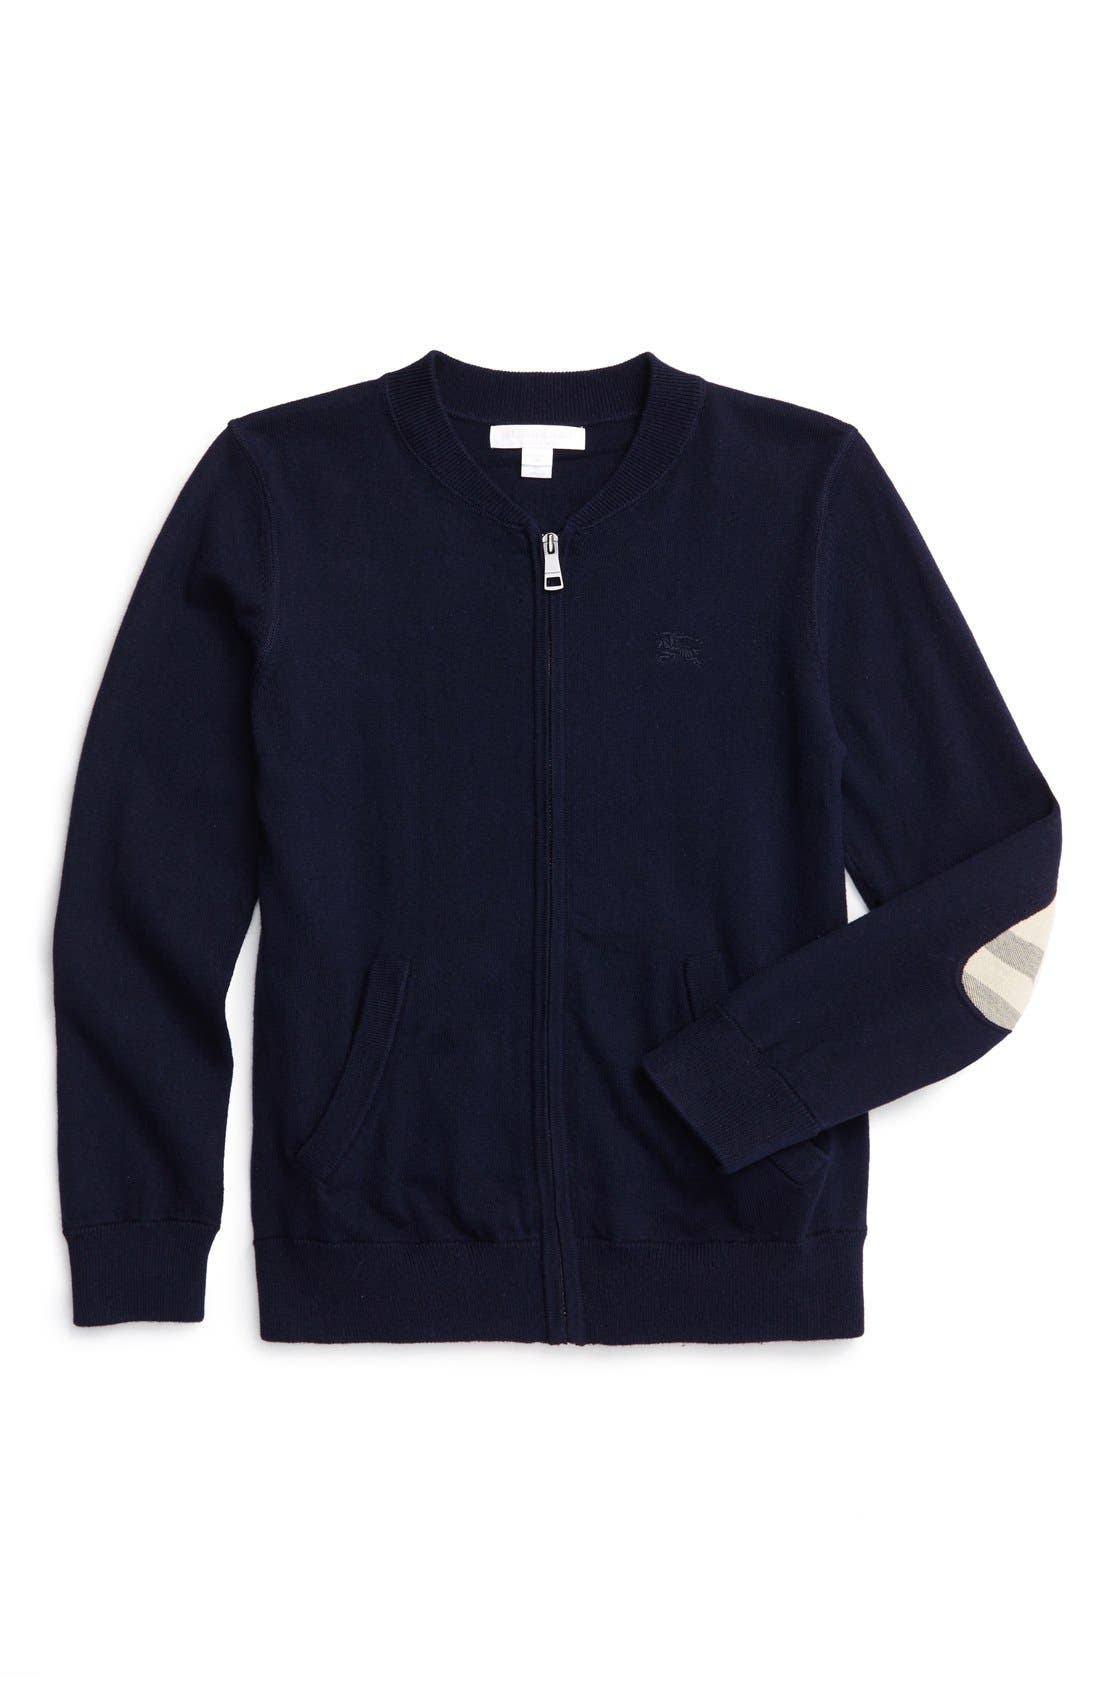 Main Image - Burberry 'Jaxson' Front Zip Cotton Cardigan (Little Boys & Big Boys)